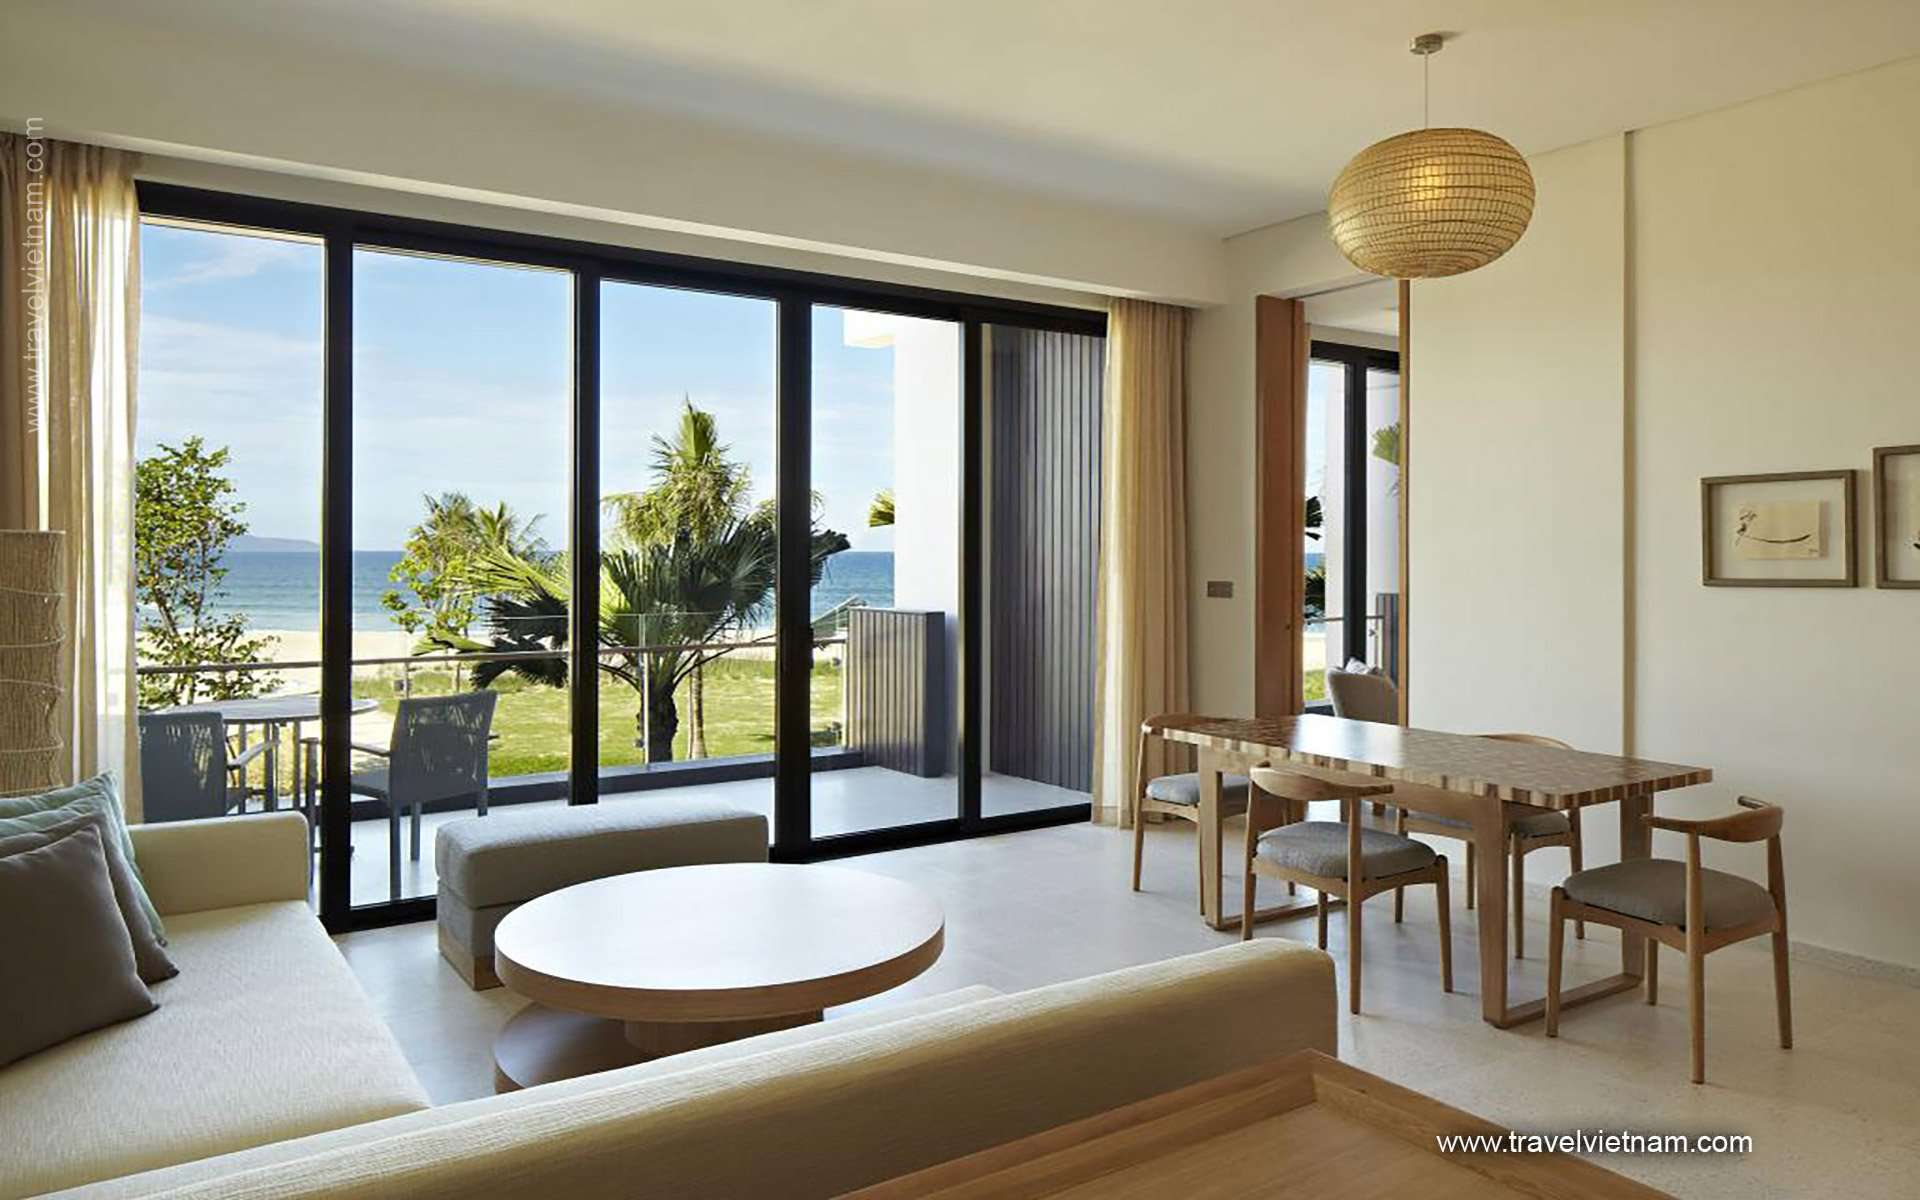 Hyatt Regency Danang Resort and Spa